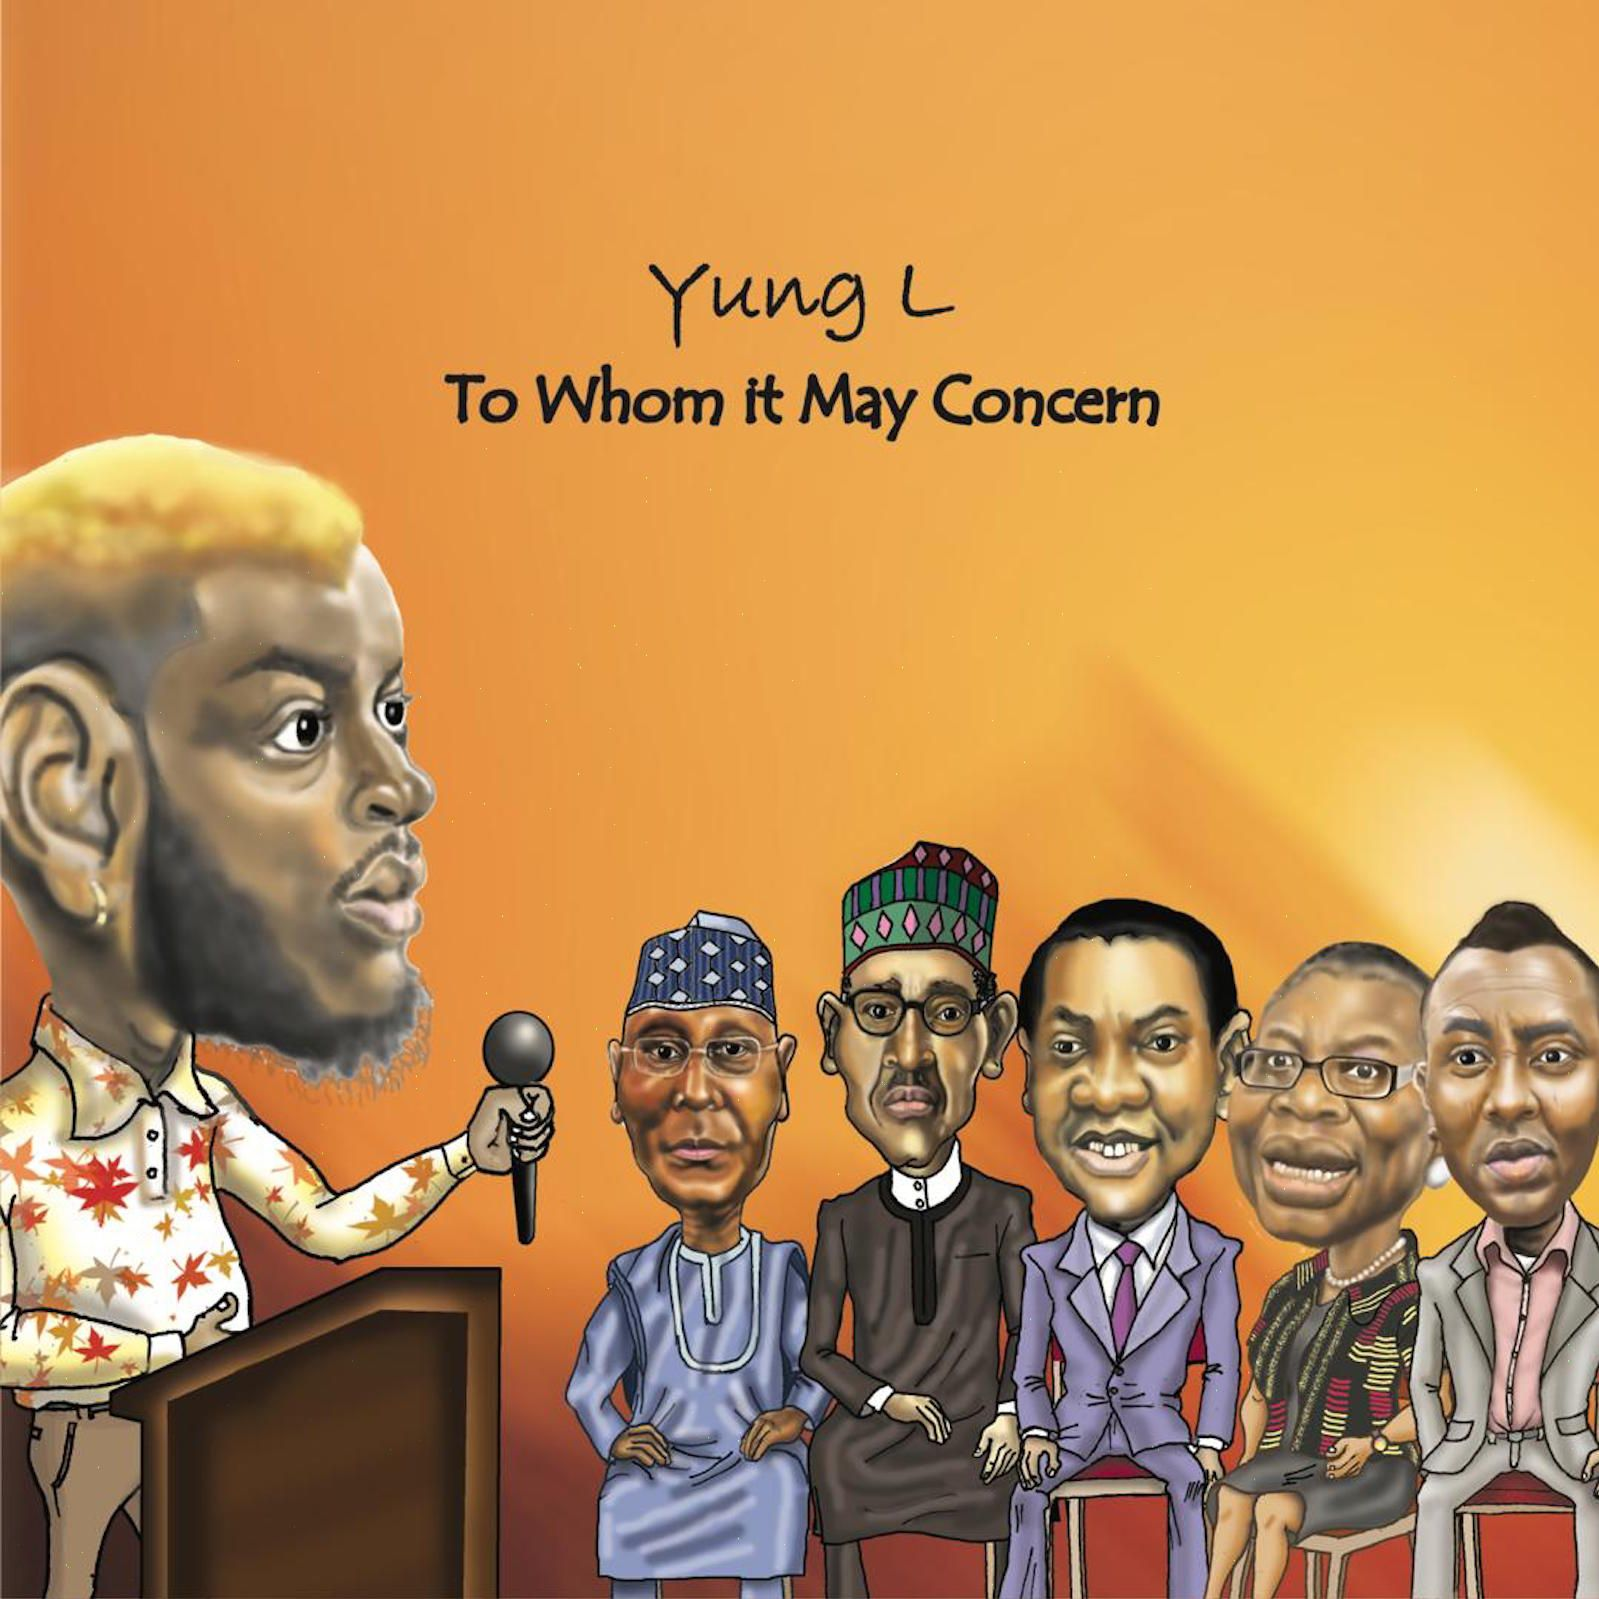 Music: Yung L – To Whom It May Concern